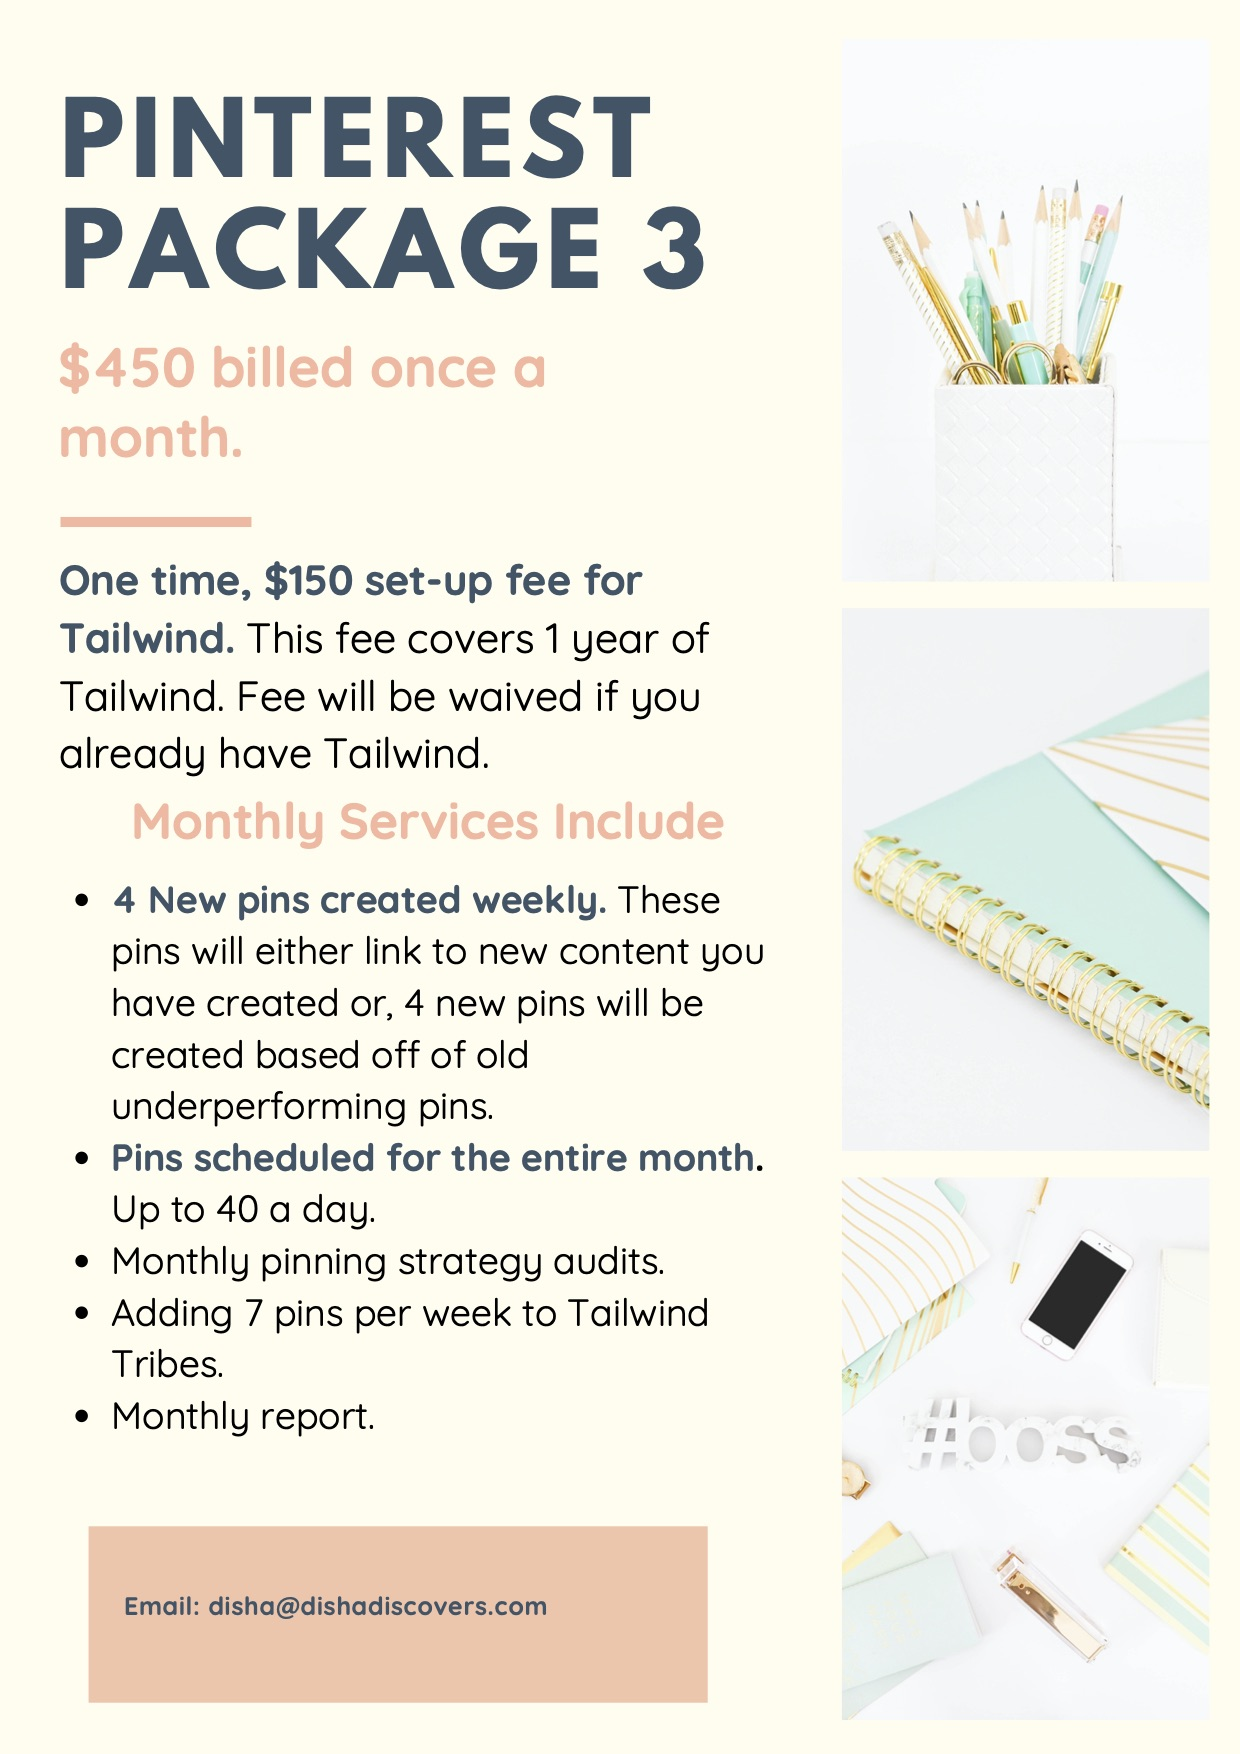 Pinterest Package 3